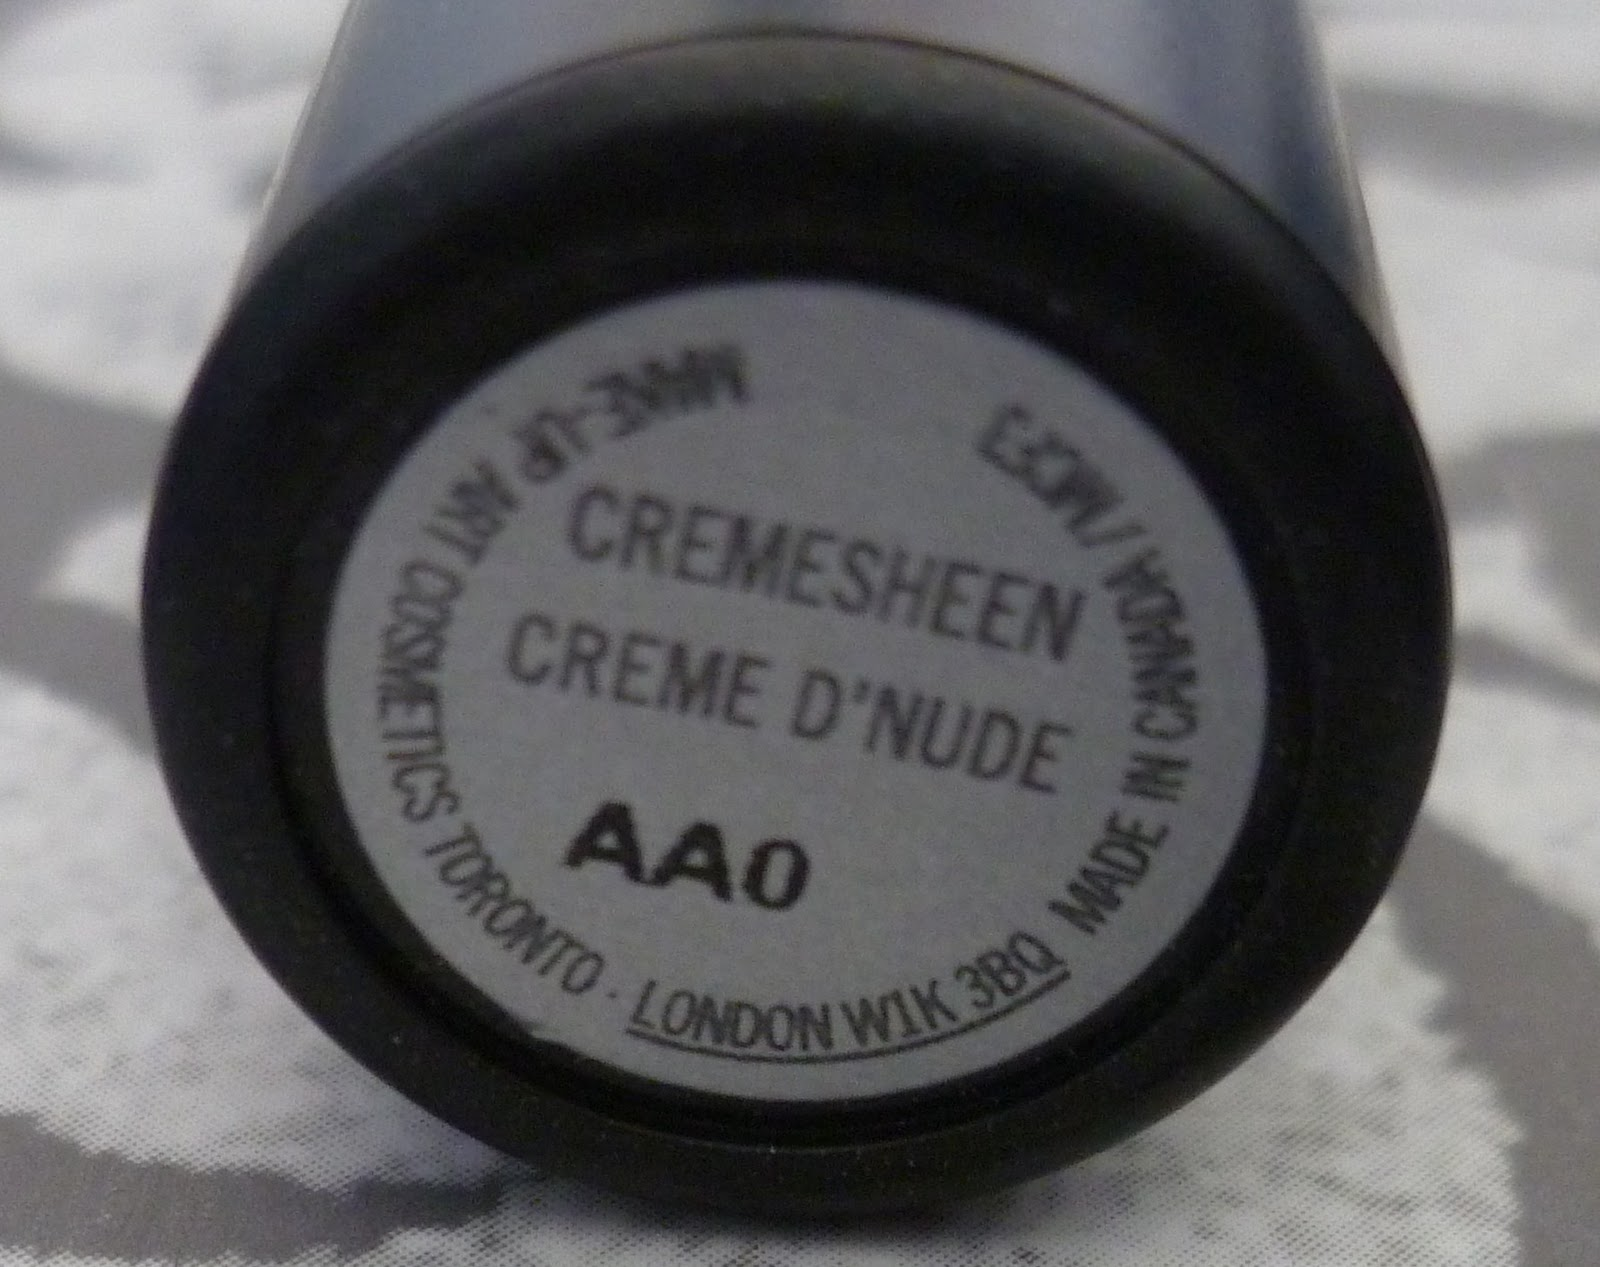 mac cremesheen lipstick cr me d 39 nude nicest things. Black Bedroom Furniture Sets. Home Design Ideas